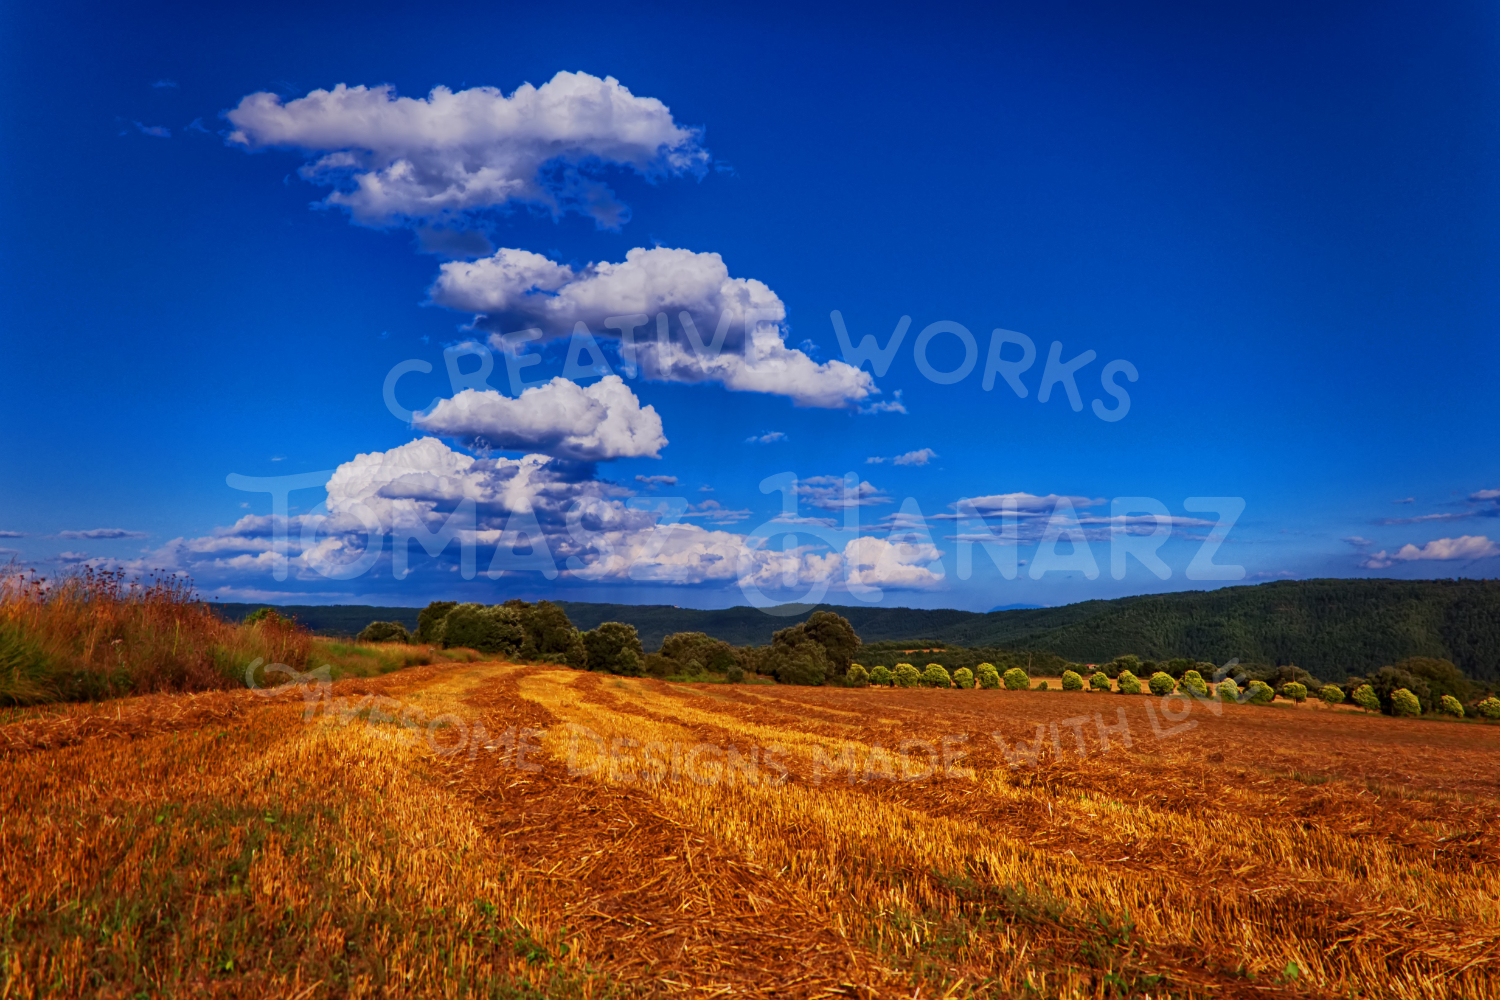 Harvest Field With Cloudy Sky example image 1